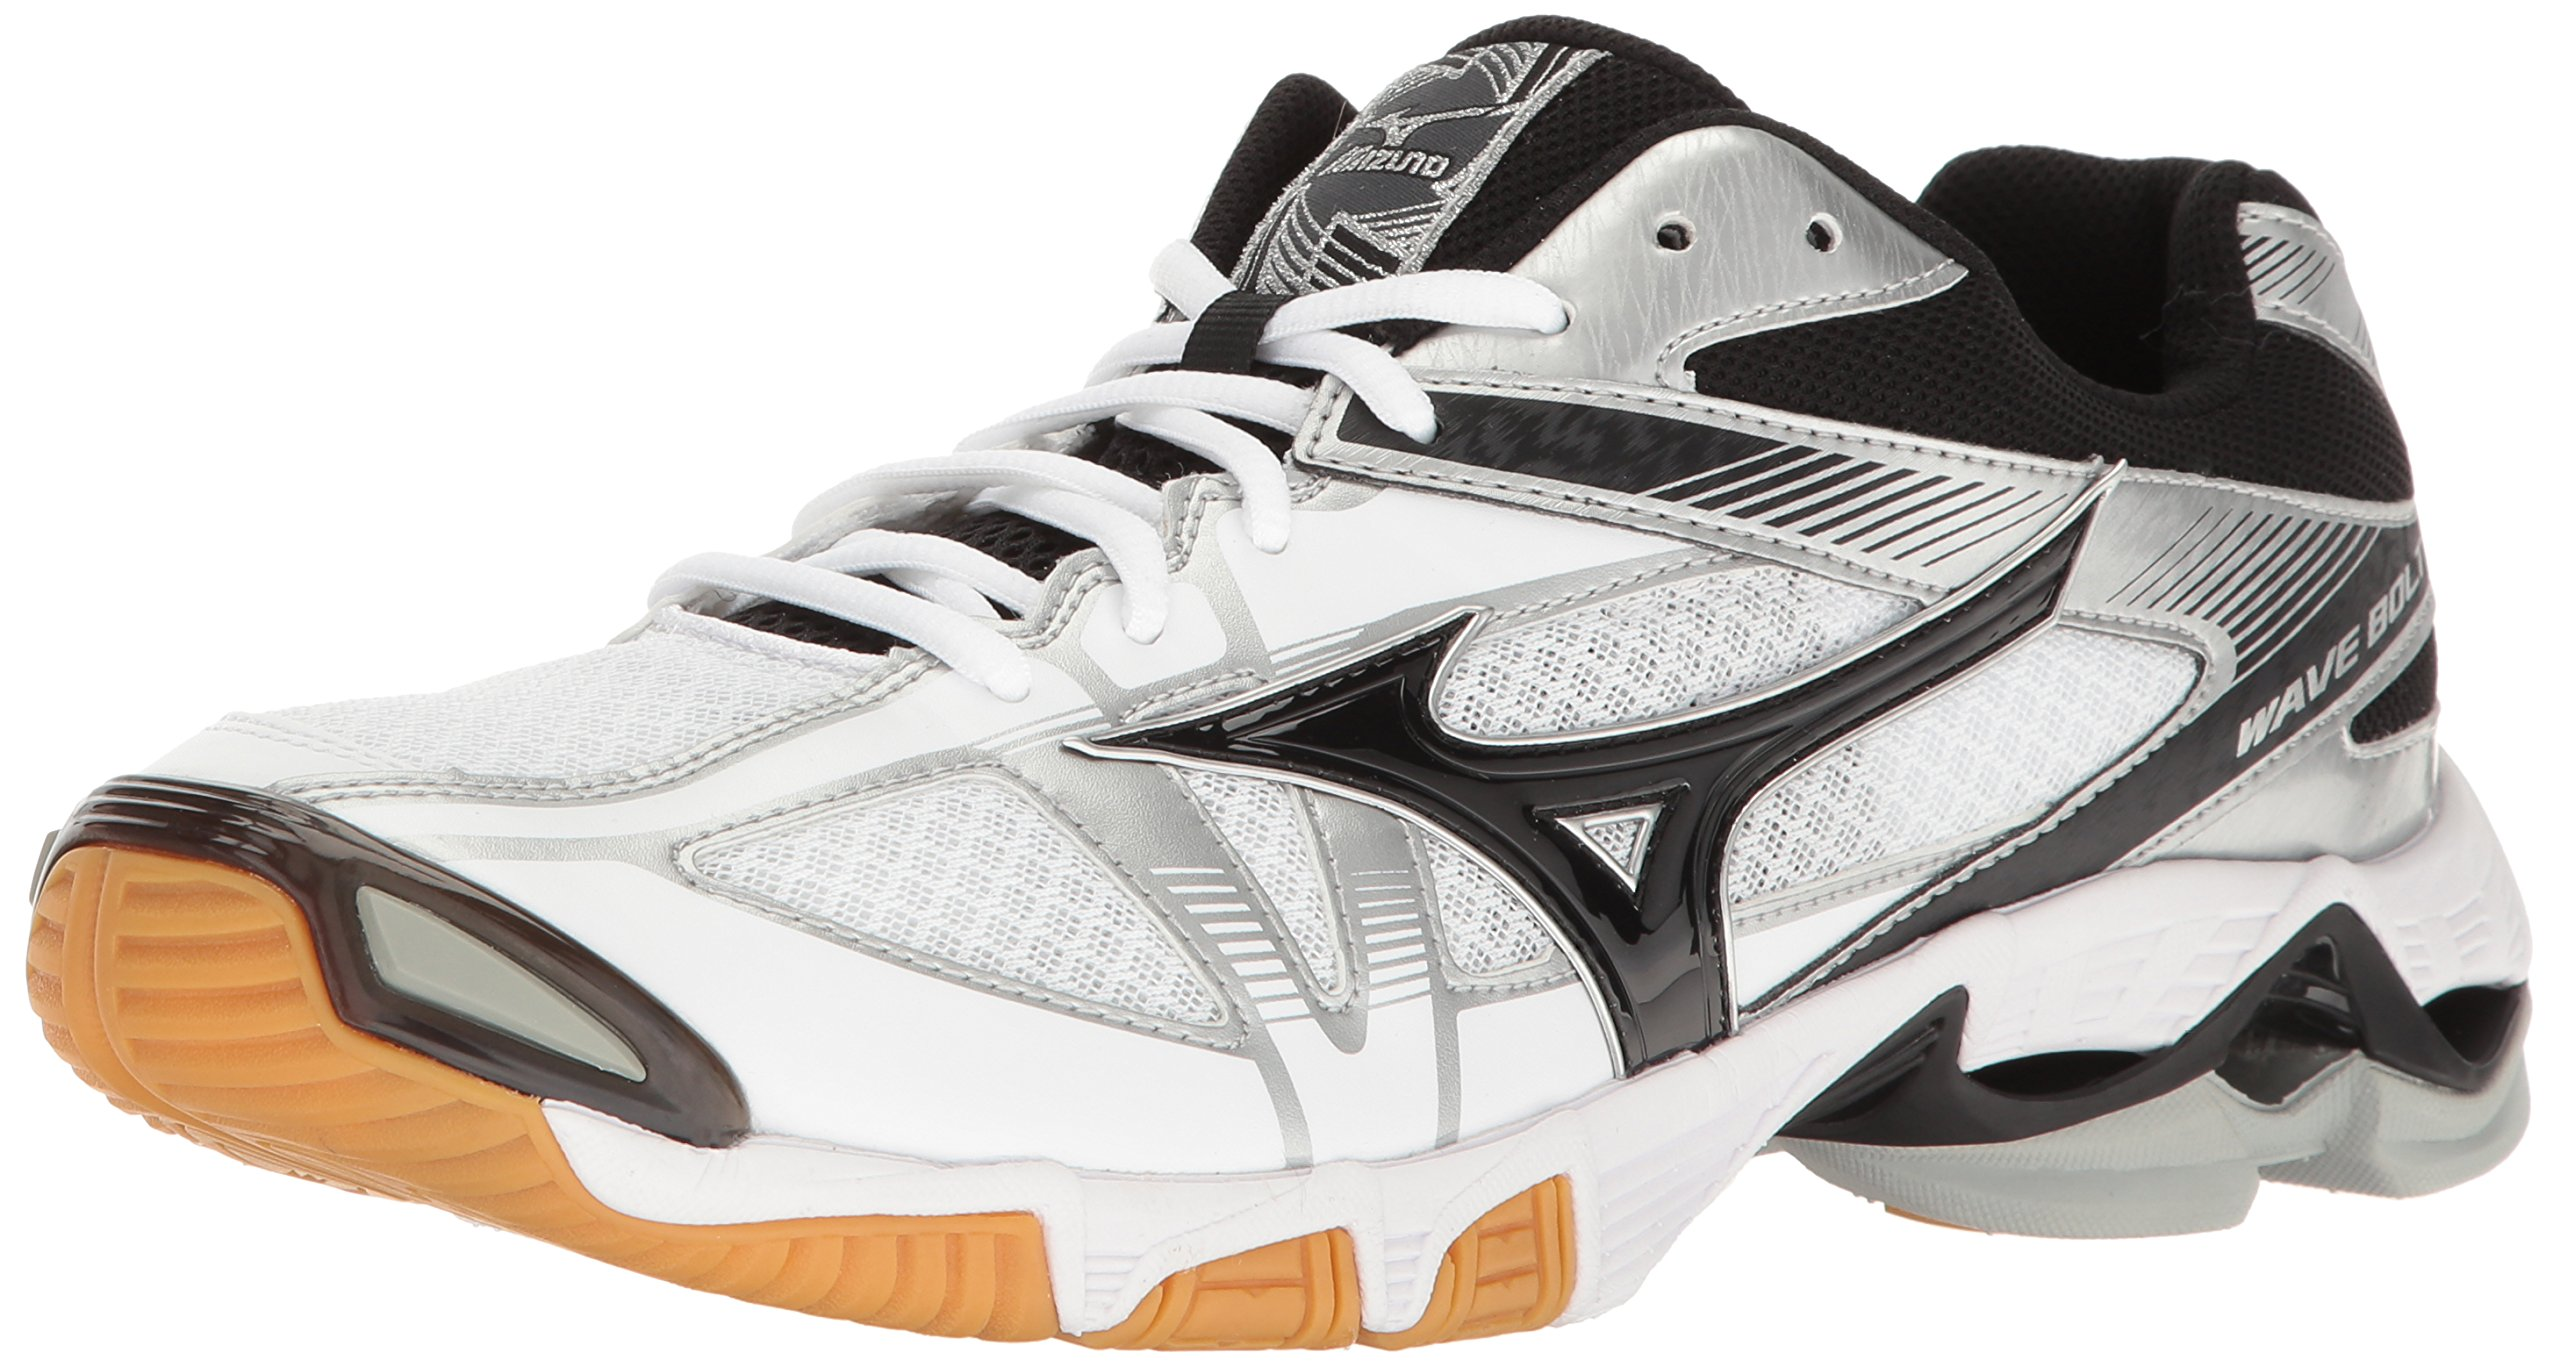 Mizuno Men's Wave Bolt 6 Volleyball Shoe, White/Black, 7 D US